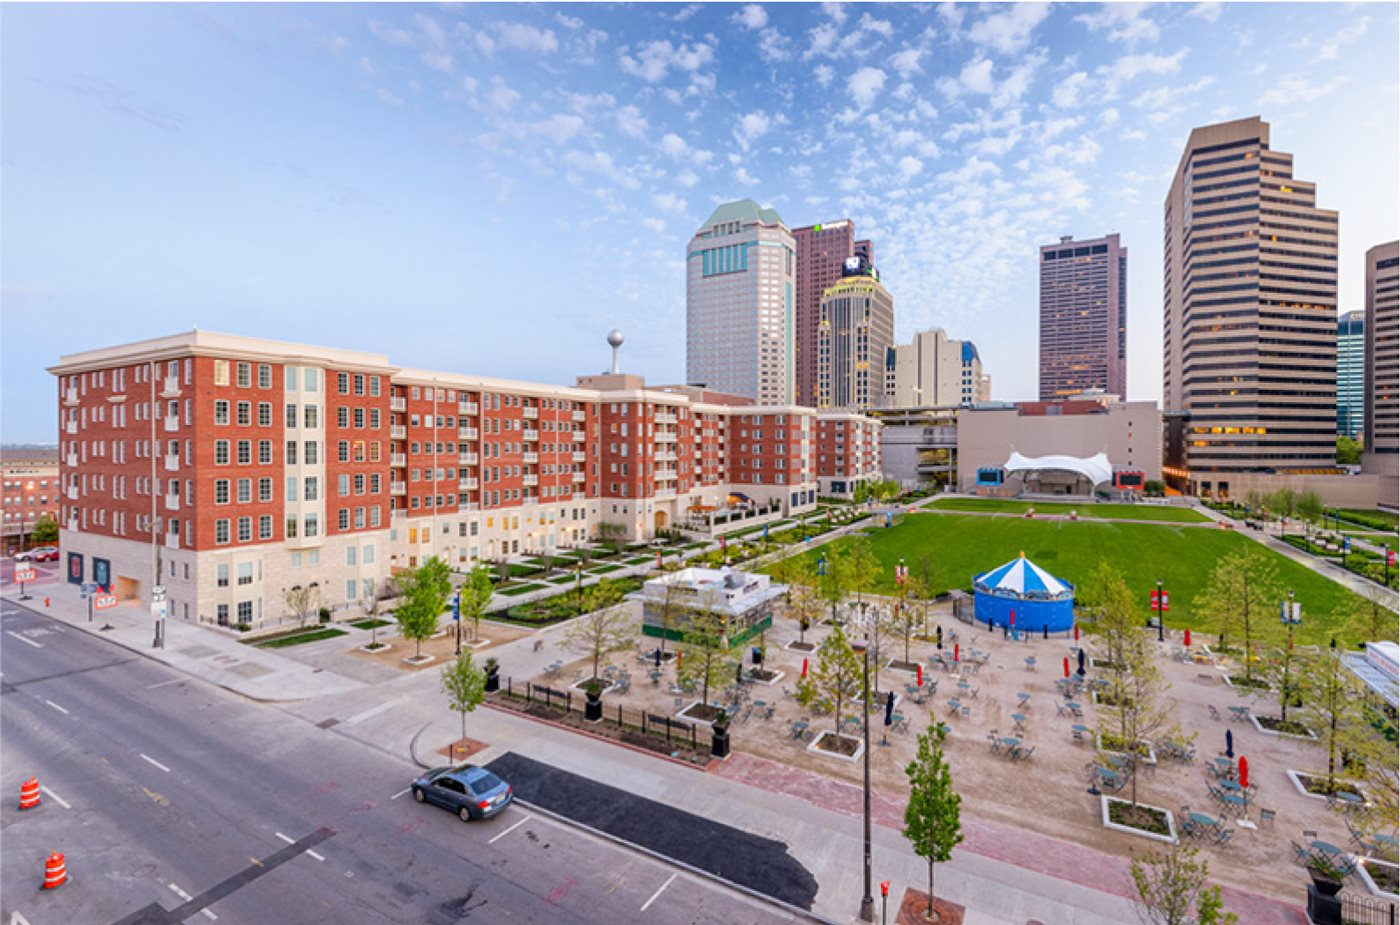 - $890 - $3,196   studios, 1 + 2 bedroomsIn a new destination district that's anything but ordinary, Highpoint on Columbus Commons offers a residential option unlike any other. It's exceptional location along the eight acre Columbus Commons park in the heart of Downtown Columbus lets you indulge in an extraordinary lifestyle that includes both urban and luxury and the vitality of true green space. With a mix of studio, one and two bedroom floor plans, including townhomes and premium home features and interior finishes, it's clear that Highpoint is the premier address in Columbus for those who want to live above it all.Furnished Short Term Apartments Available!View Furnished Housingand View Corporate Housing